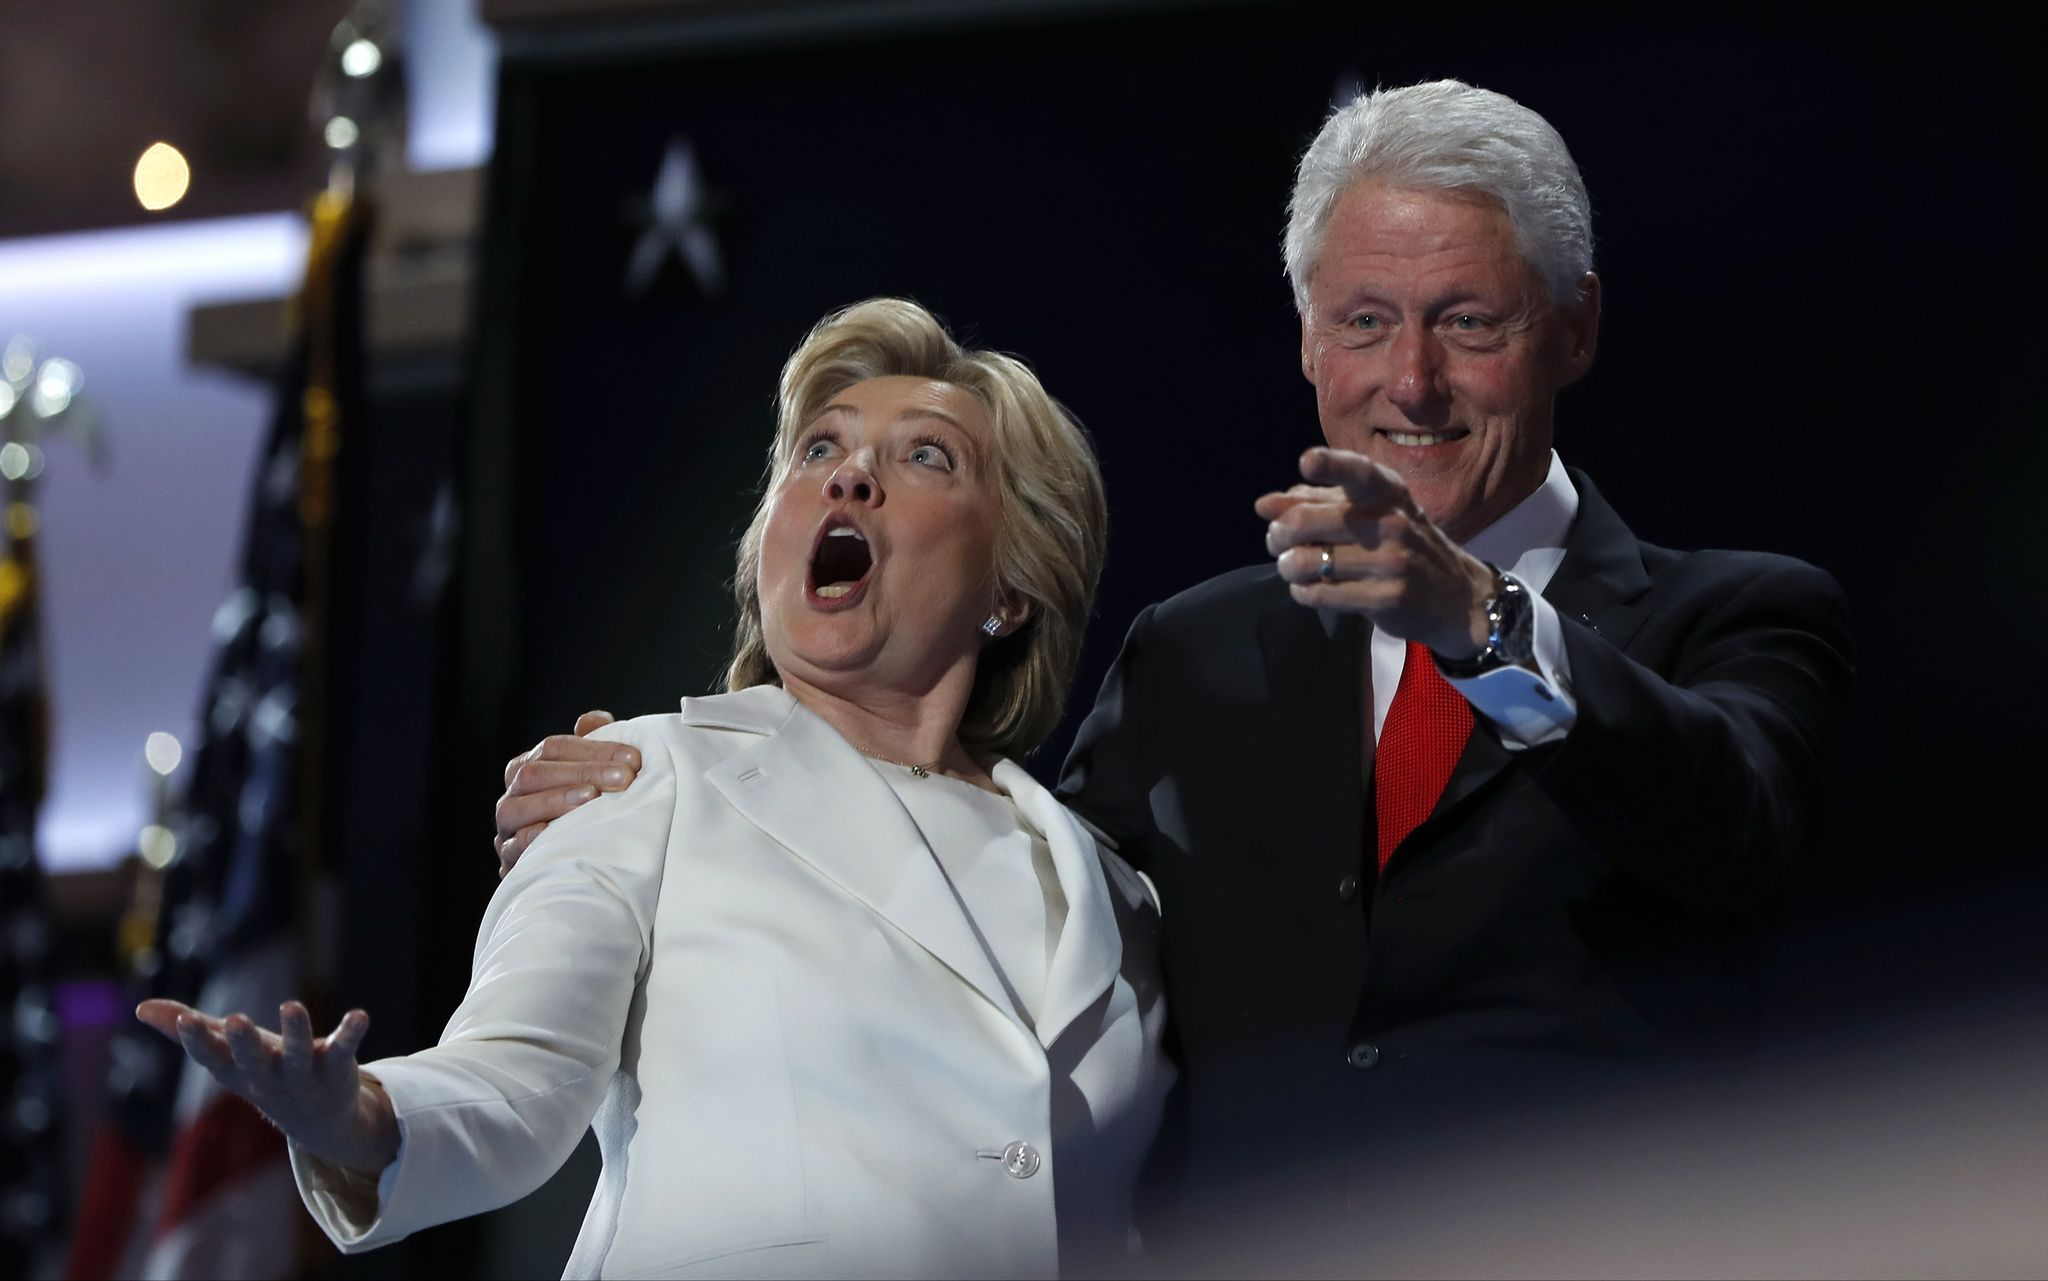 Hillary Clinton donors still in shock over Trump win, hope to 'wake up' from nightmare